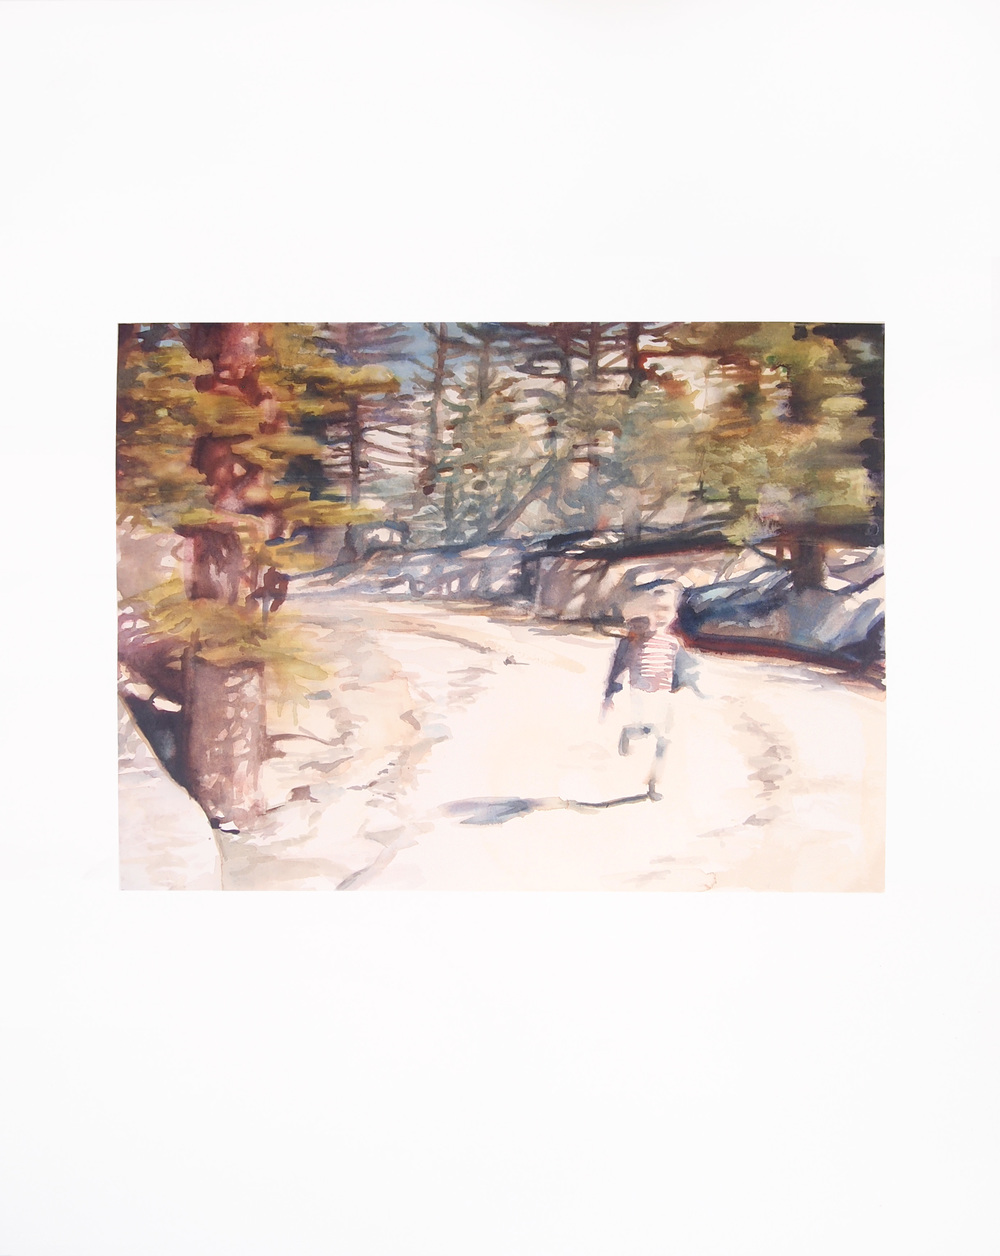 Image (Yellowstone). 2014. Watercolor. 67cm x 84.5cm.